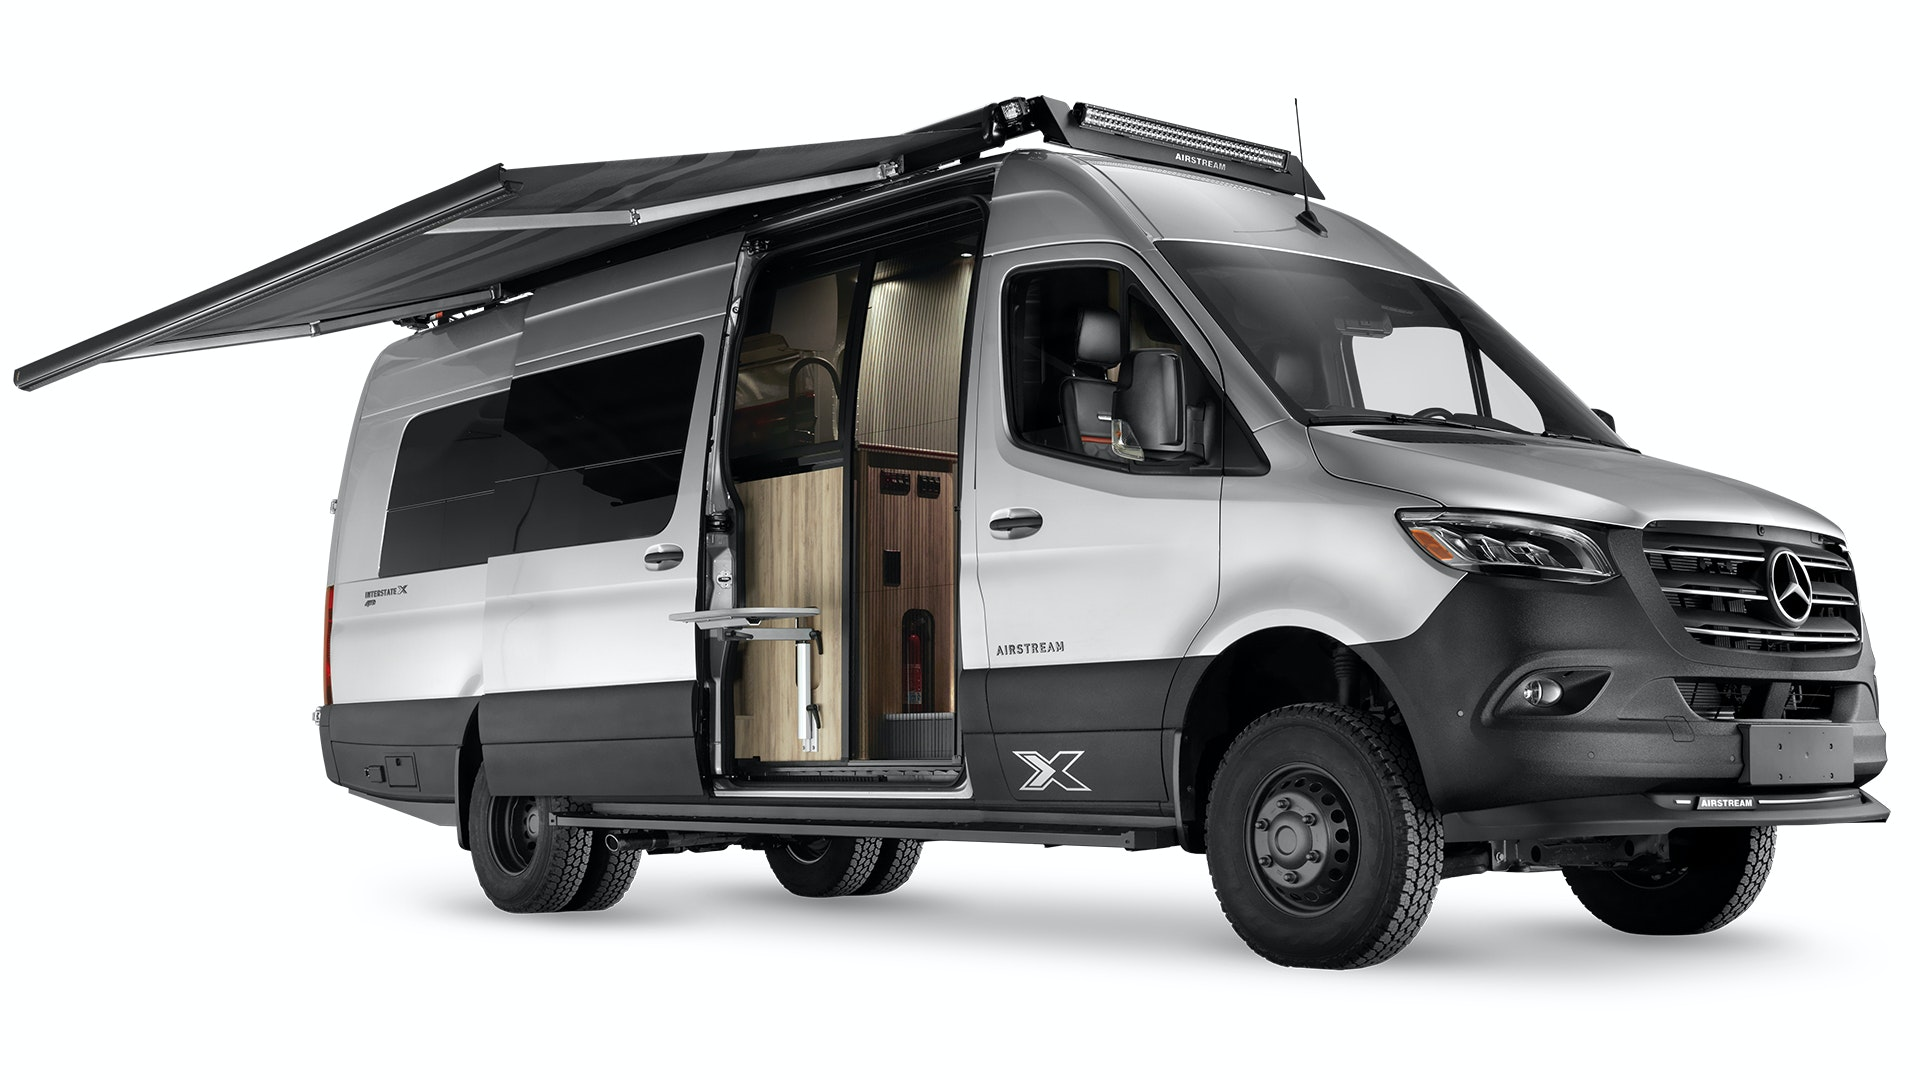 Airstream-Interstate-24X-Exterior-Studio-with-Awning-Extended-95rsjicqeg